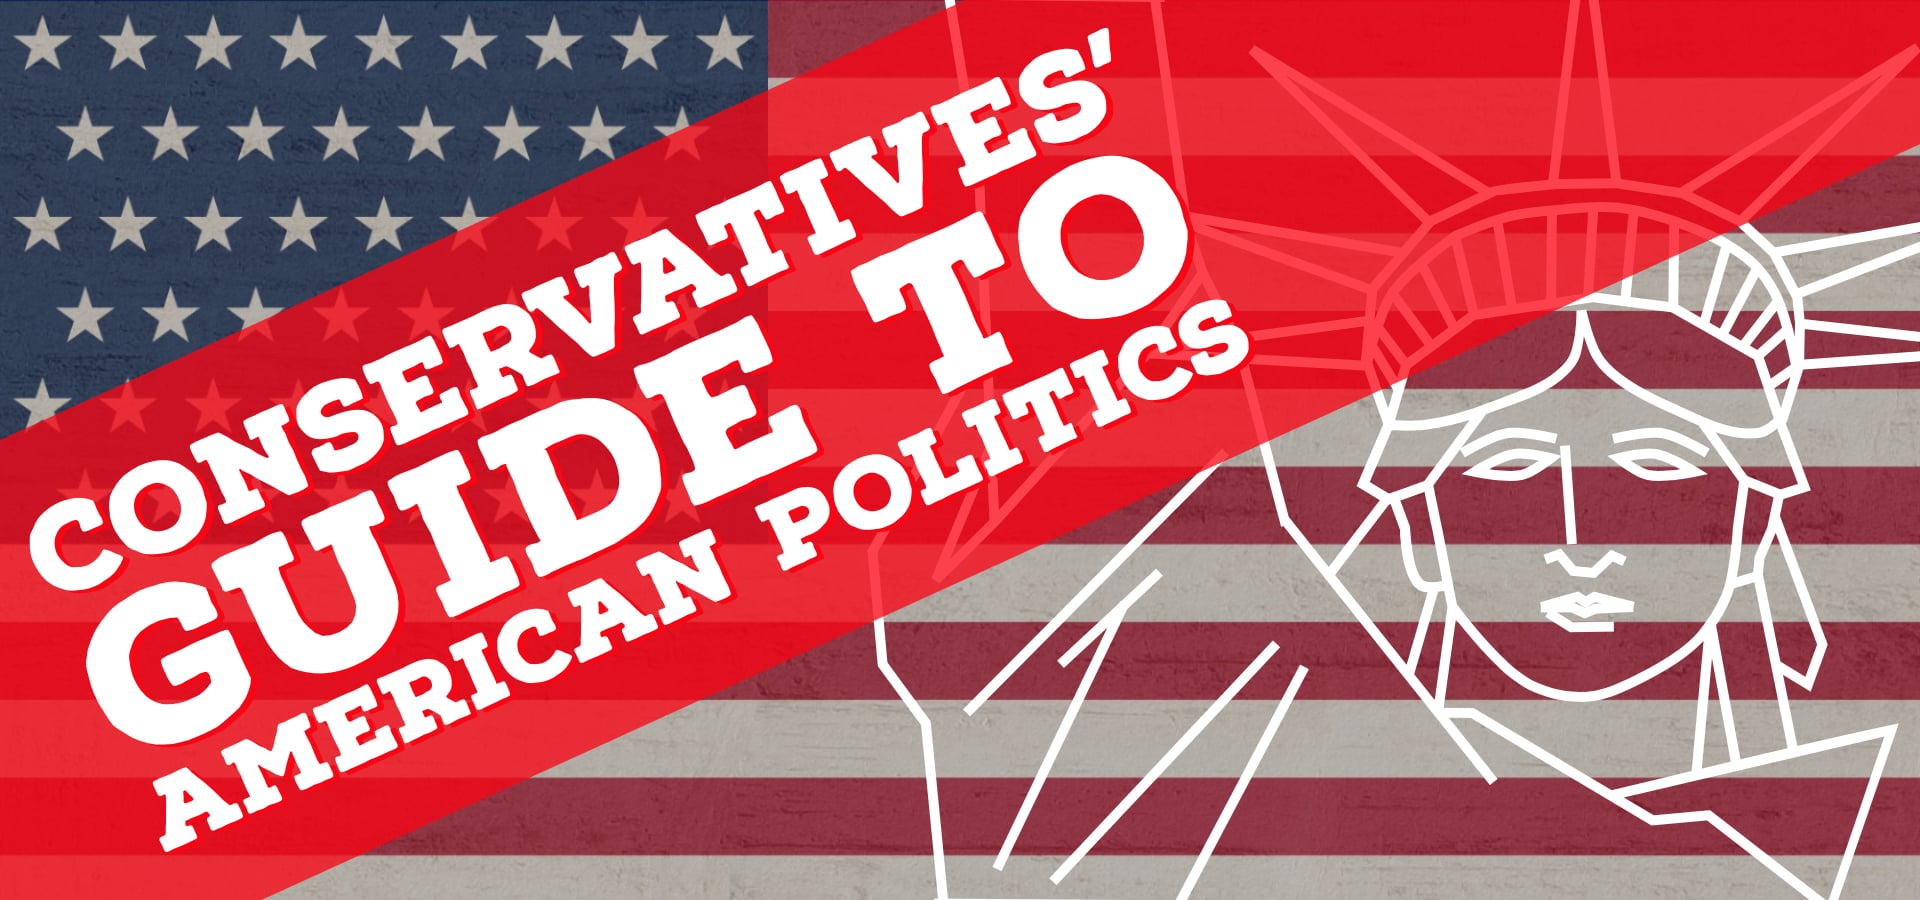 Conservatives' Guide to American Politics